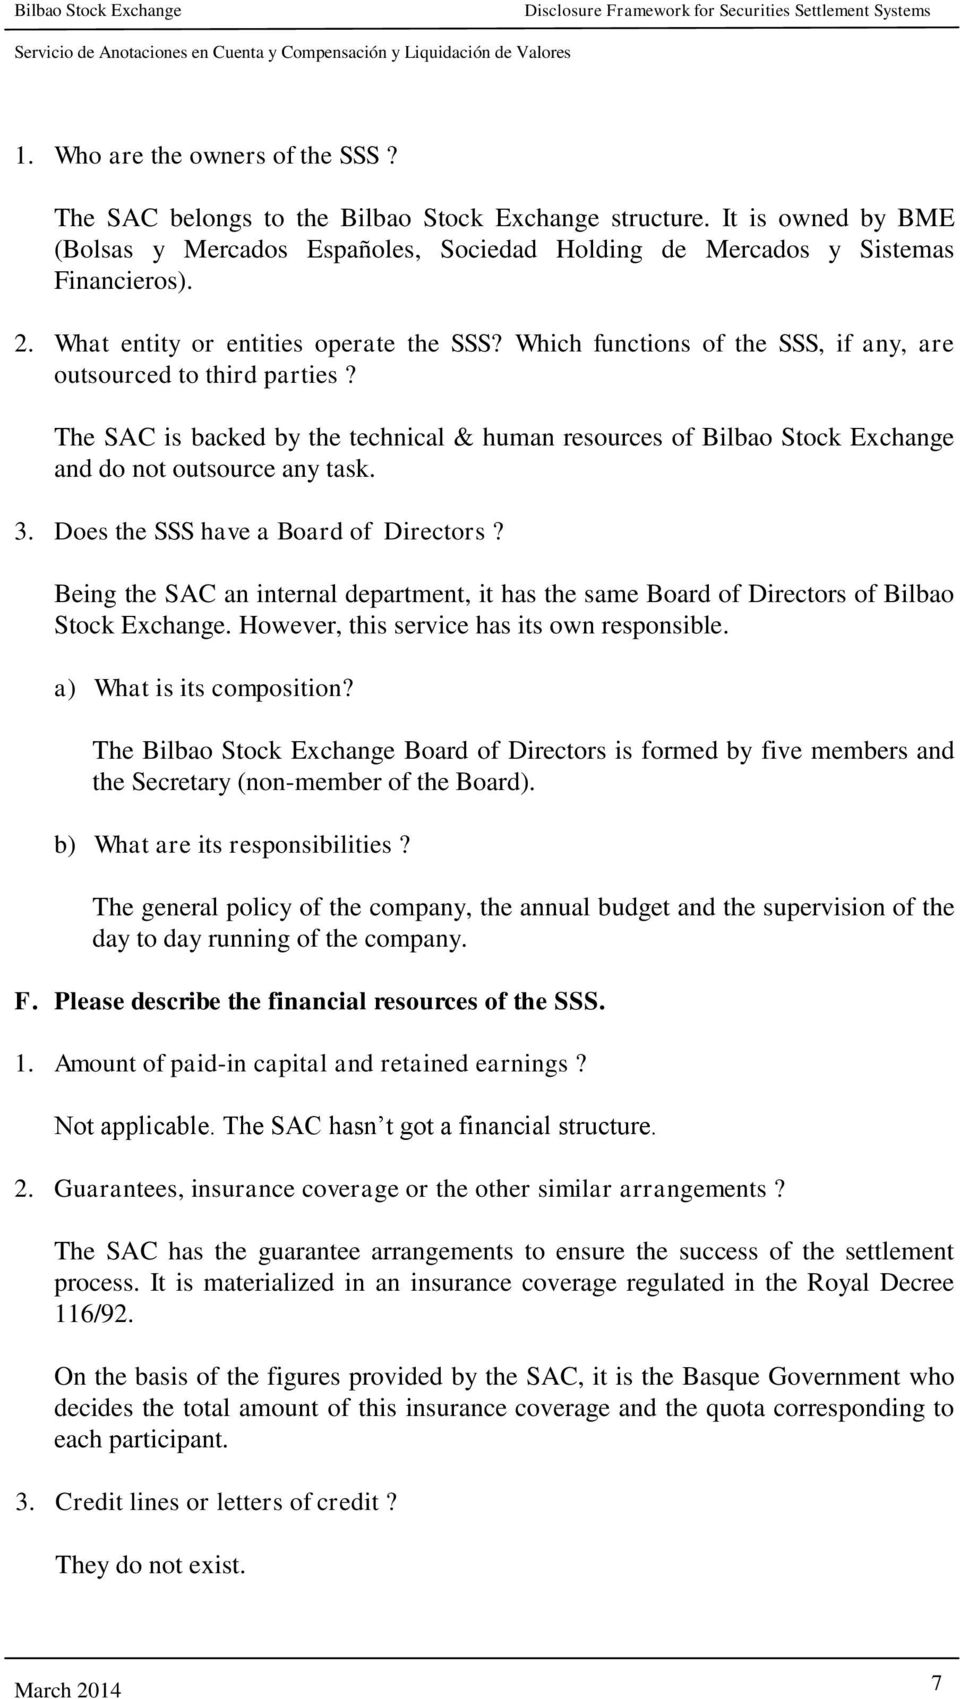 The SAC is backed by the technical & human resources of Bilbao Stock Exchange and do not outsource any task. 3. Does the SSS have a Board of Directors?